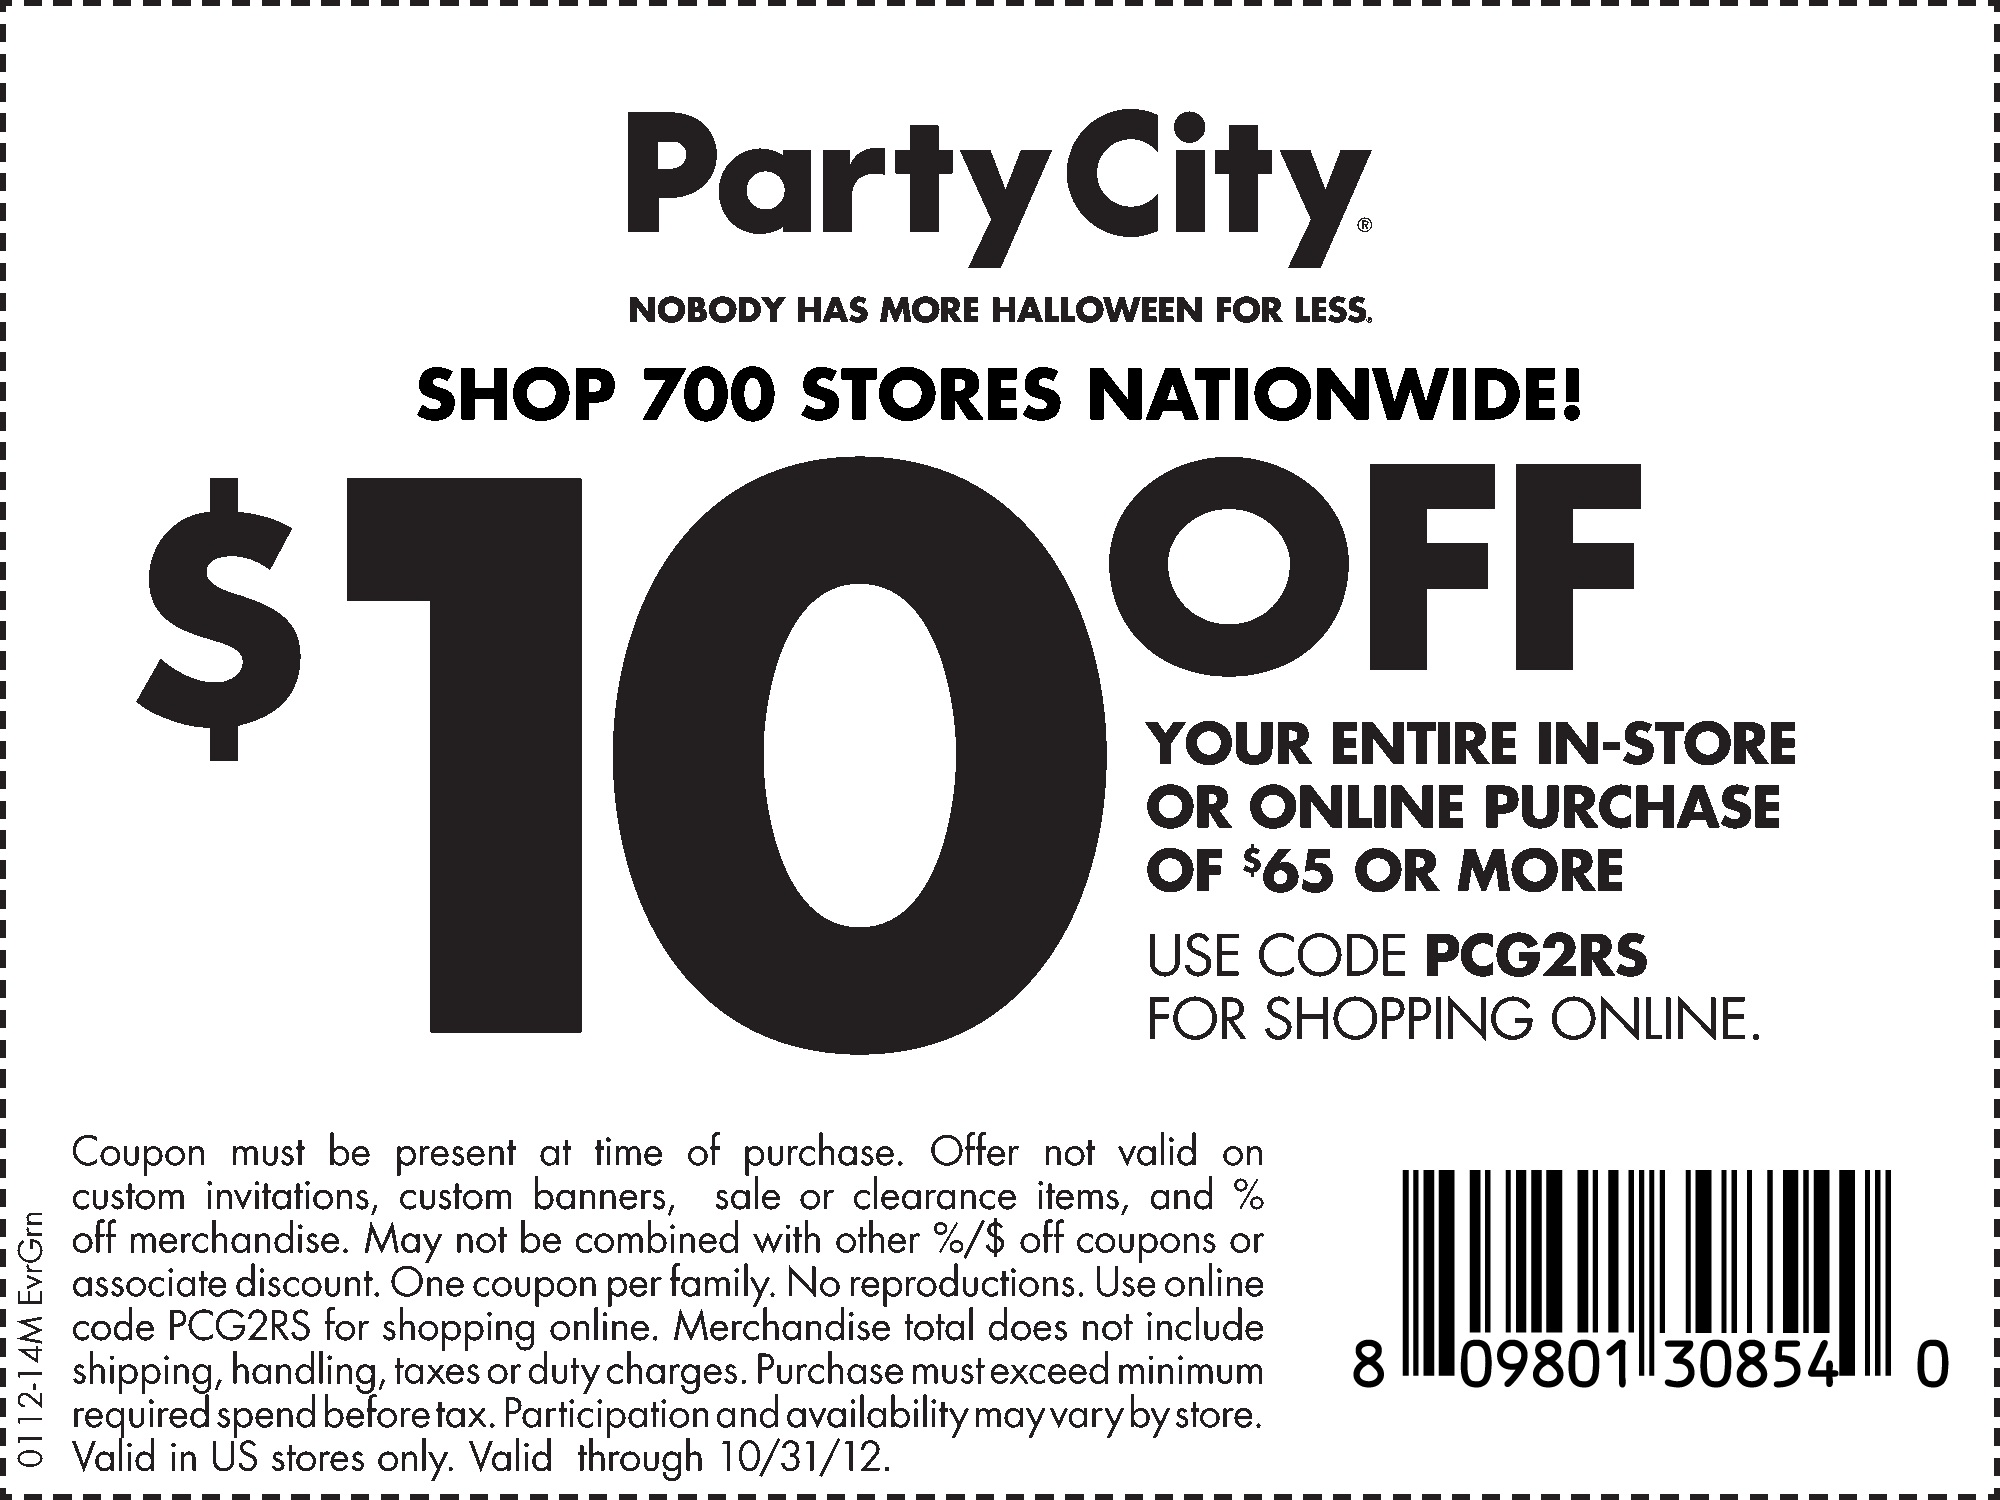 All Active Party City Promo Codes & Coupons - Up To 20% off in December 2018